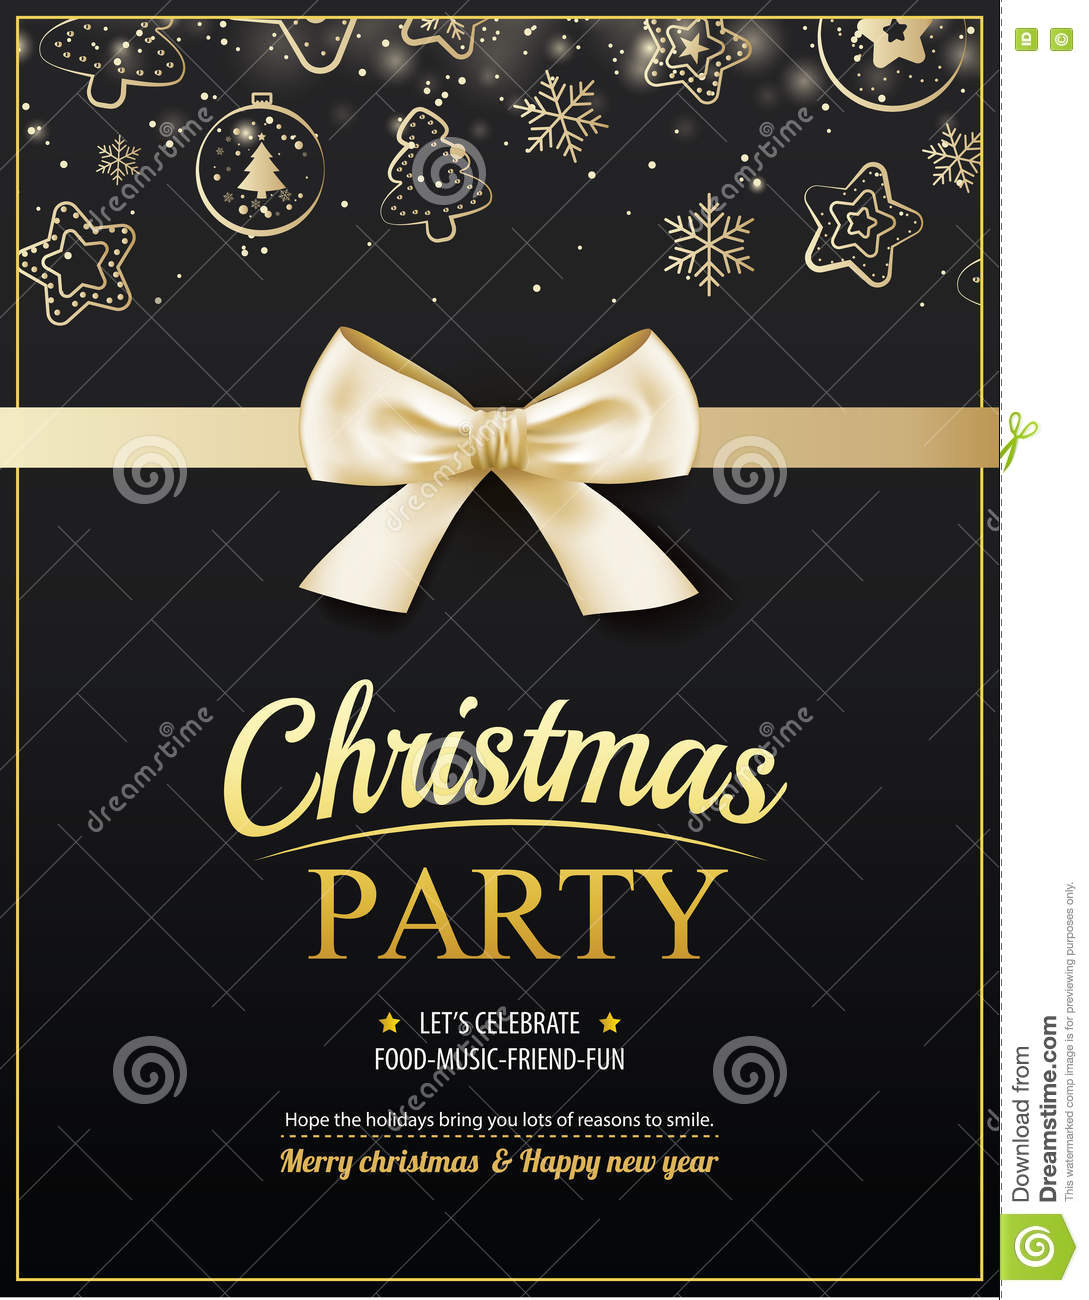 invitation merry christmas party poster banner and card design template happy holiday and new year with gold ribbon theme concept